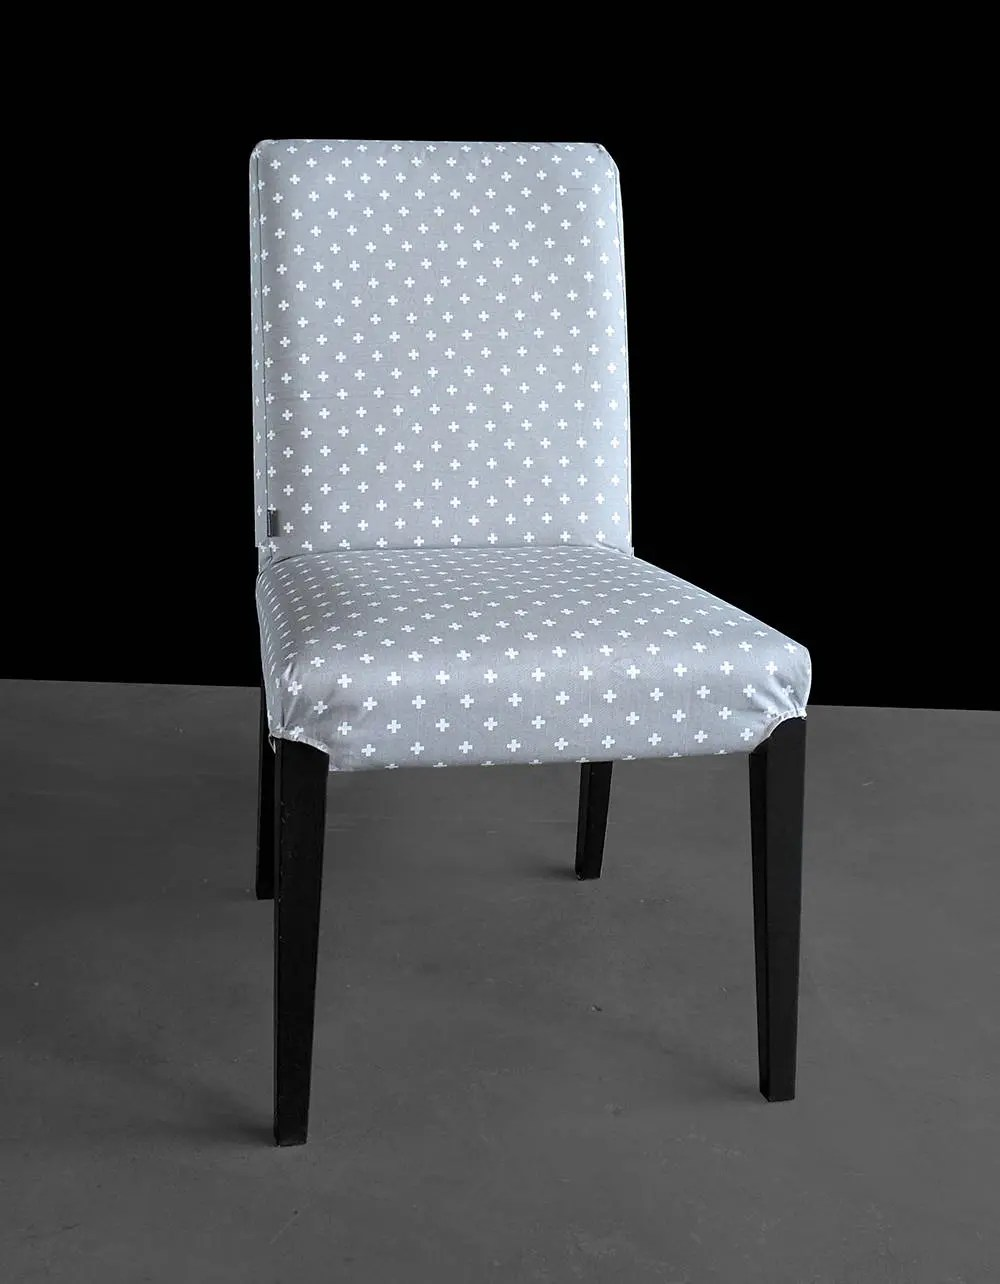 poang chair covers etsy rental new orleans gray crosses custom ikea henriksdal dining cover